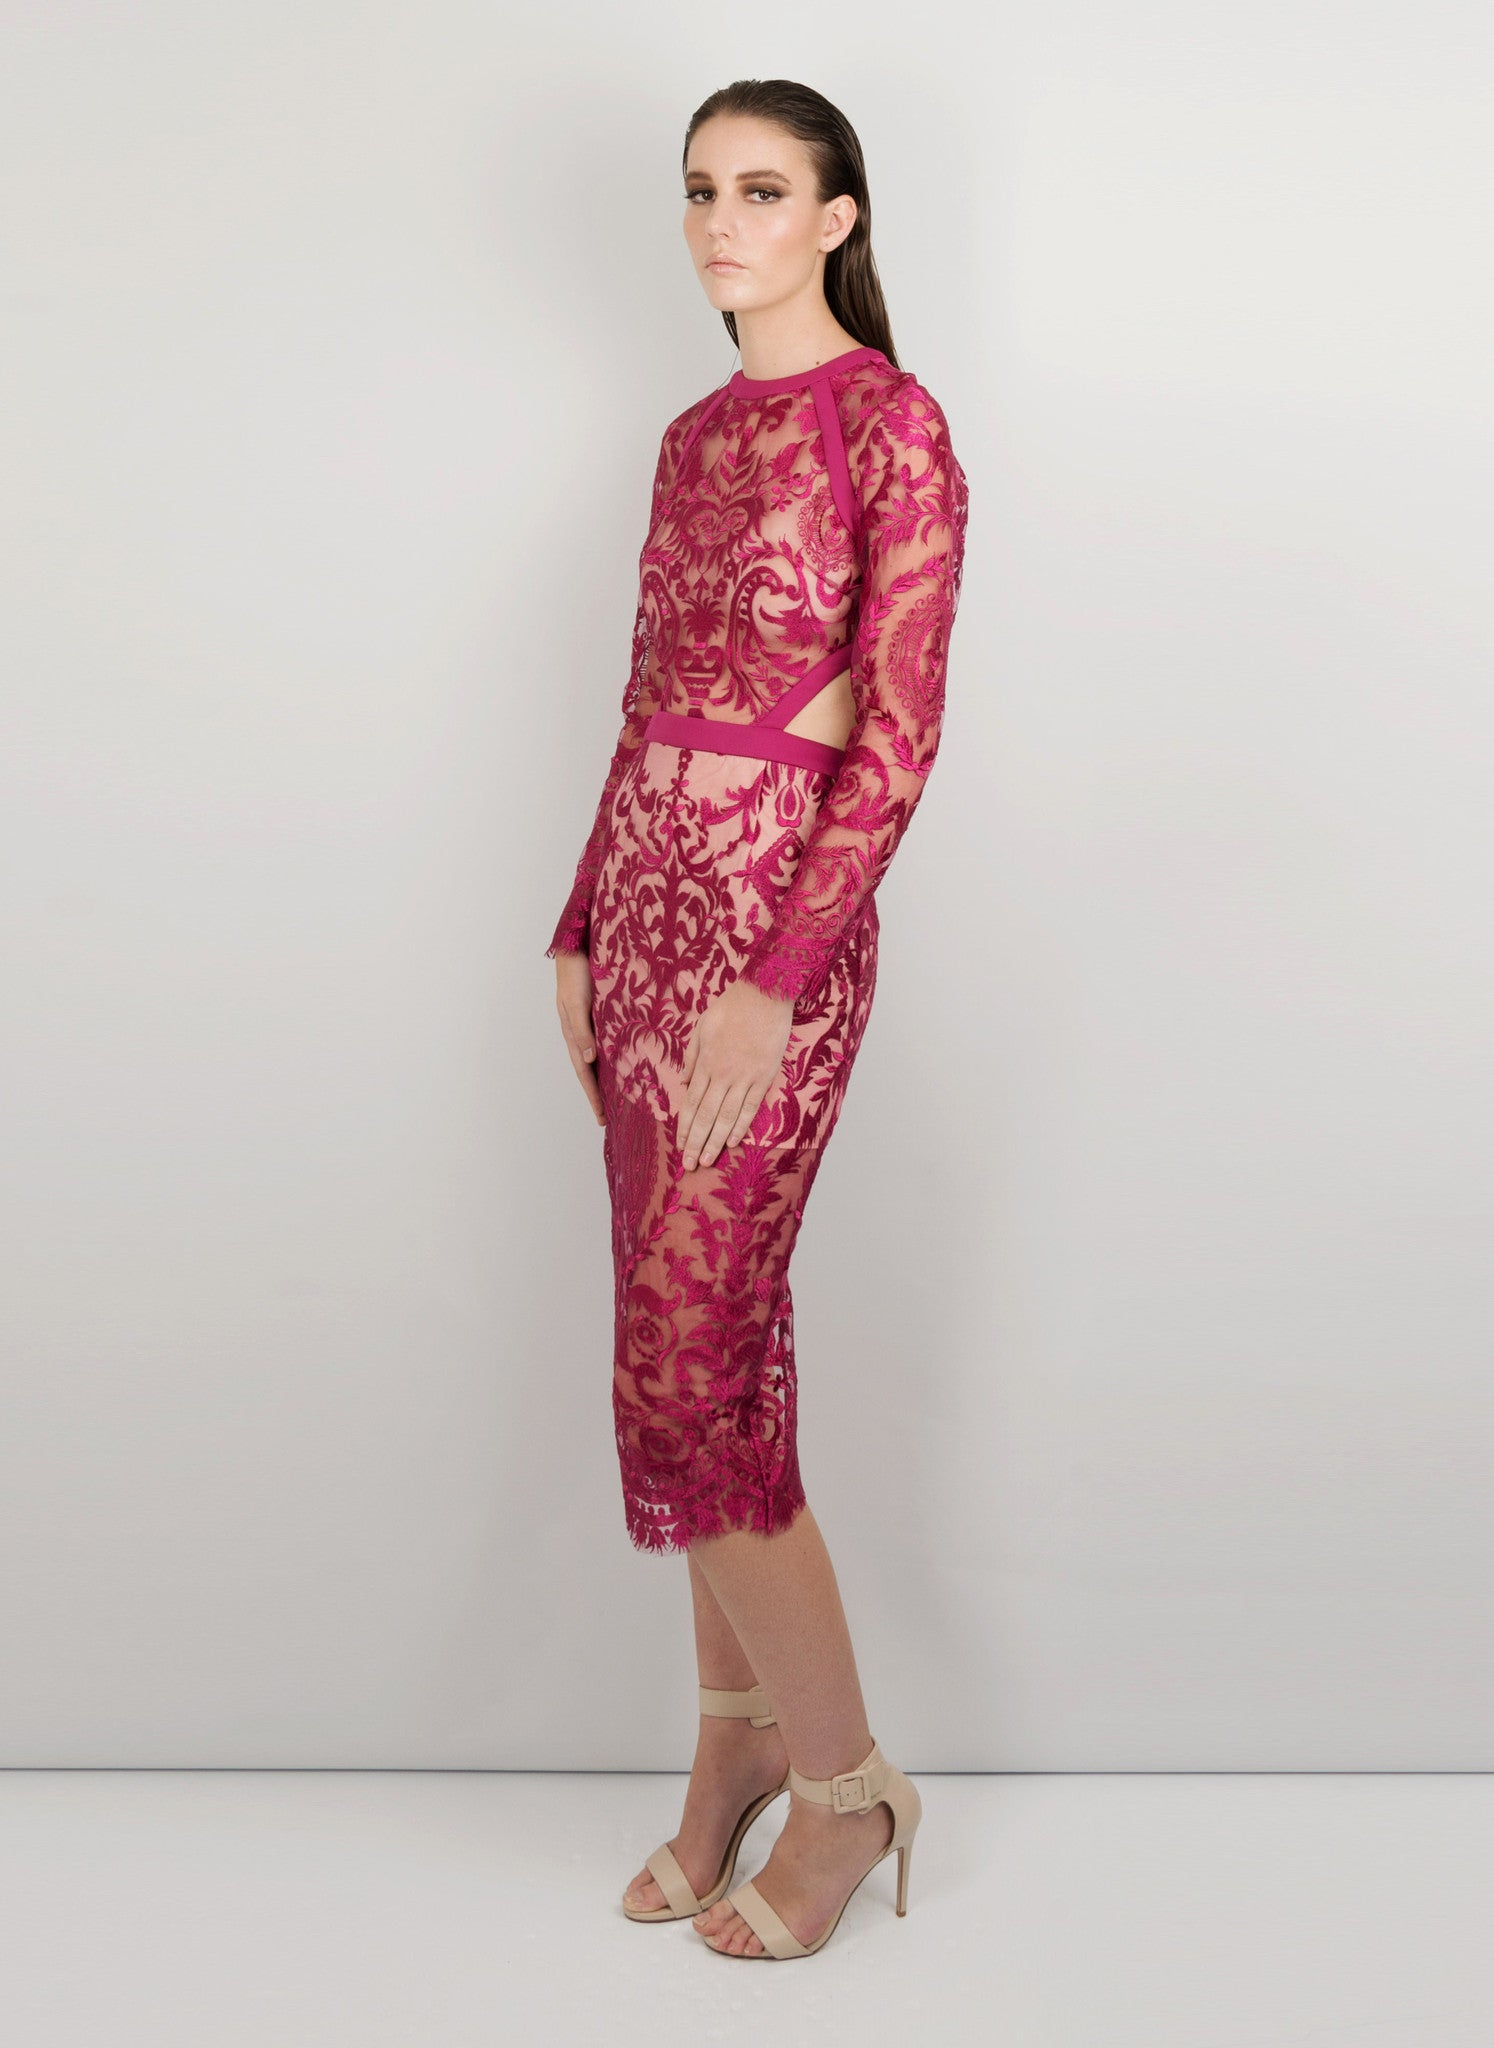 MADOLA-THE-LABEL - SOPHIA DRESS. Delicate embroidery mesh fabric. Front/back cut-outs. Bodice transparent, nude colour mesh lining. Designed in Australia